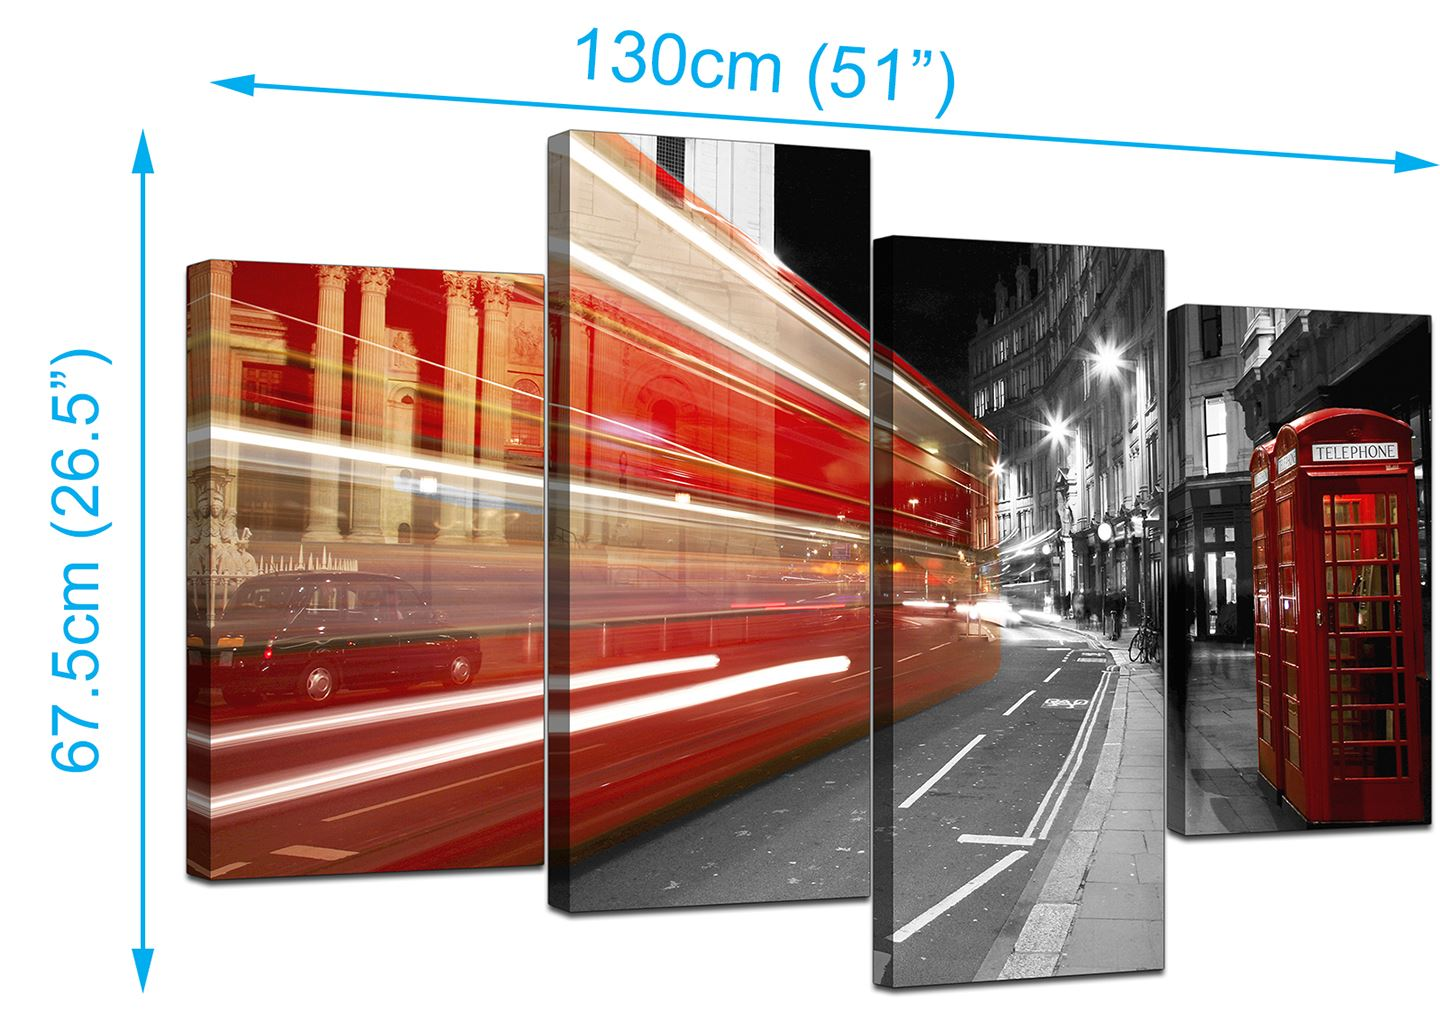 London Street Red Bus Phone Boxes Picture Print On Framed Canvas Wall Art Decor